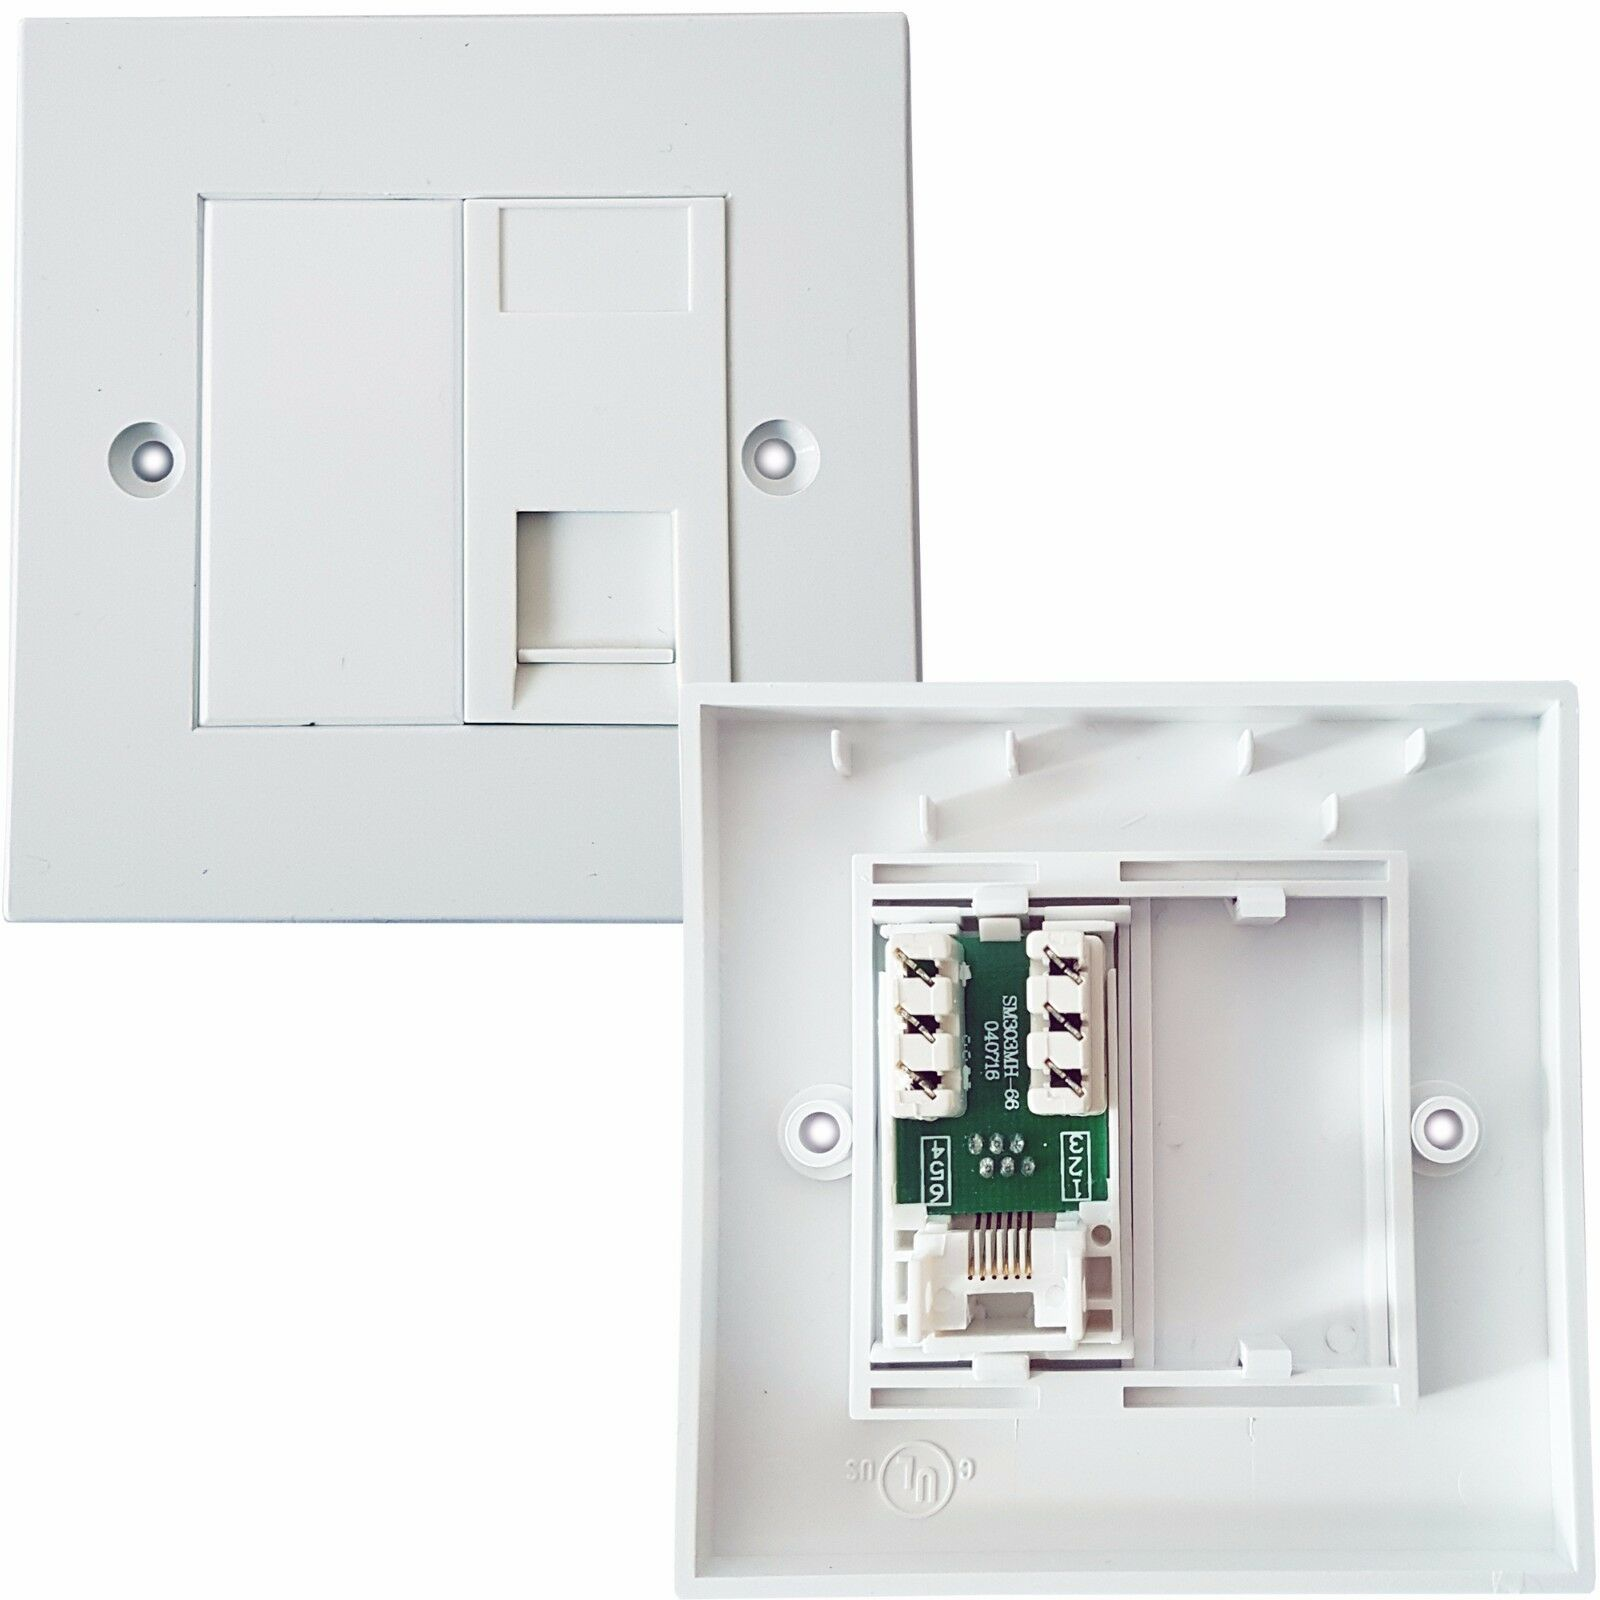 Rj11 Phone Socket Wall Face Plate Outlet Bt Router Modem Telephone Adsl Wiring Diagram For 1 Of 1free Shipping